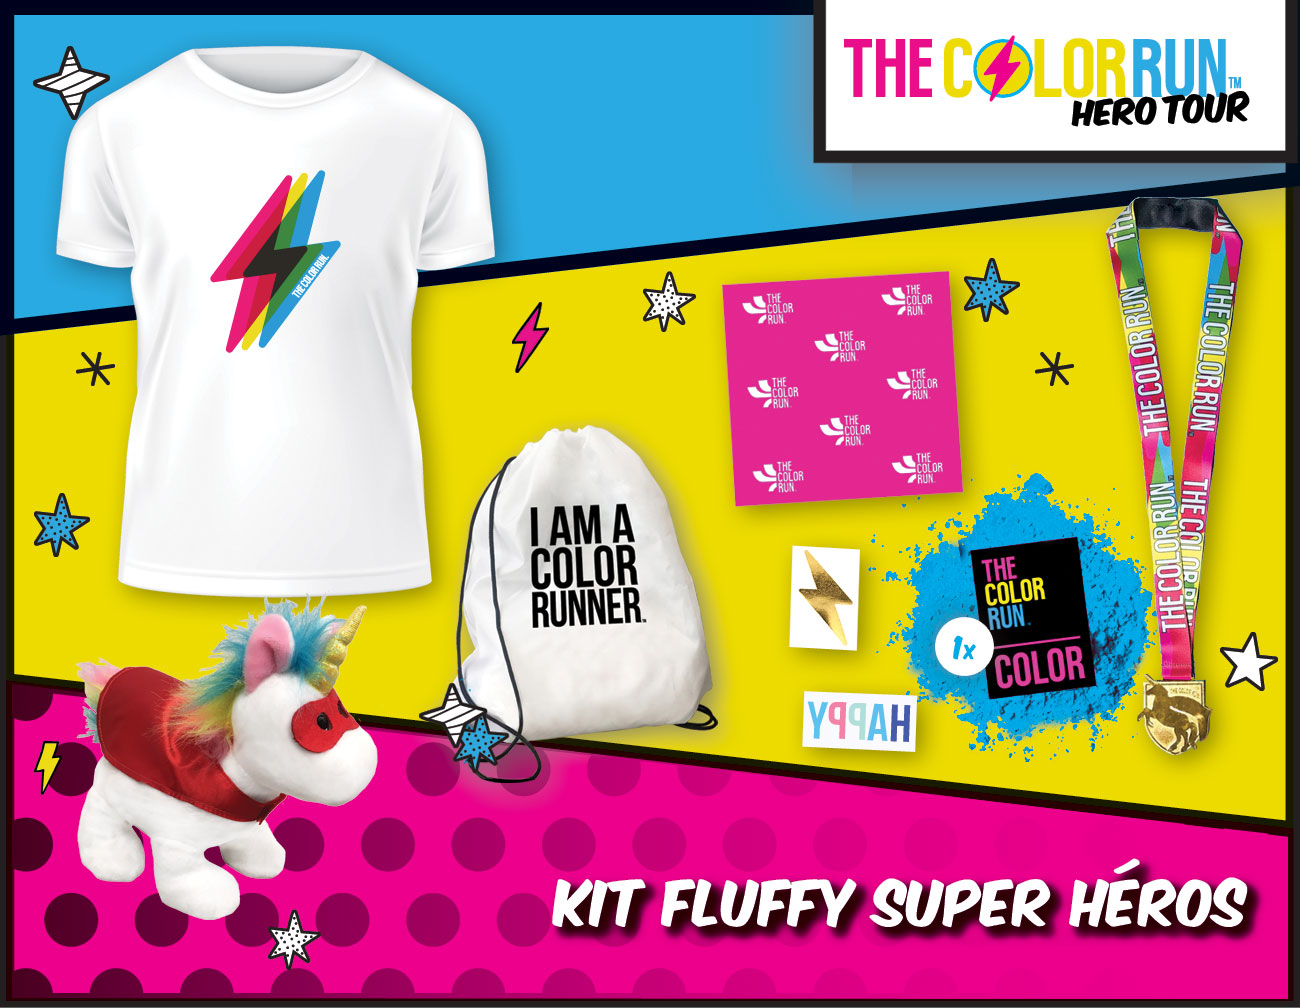 kid fluffy Super héros Participant Kit